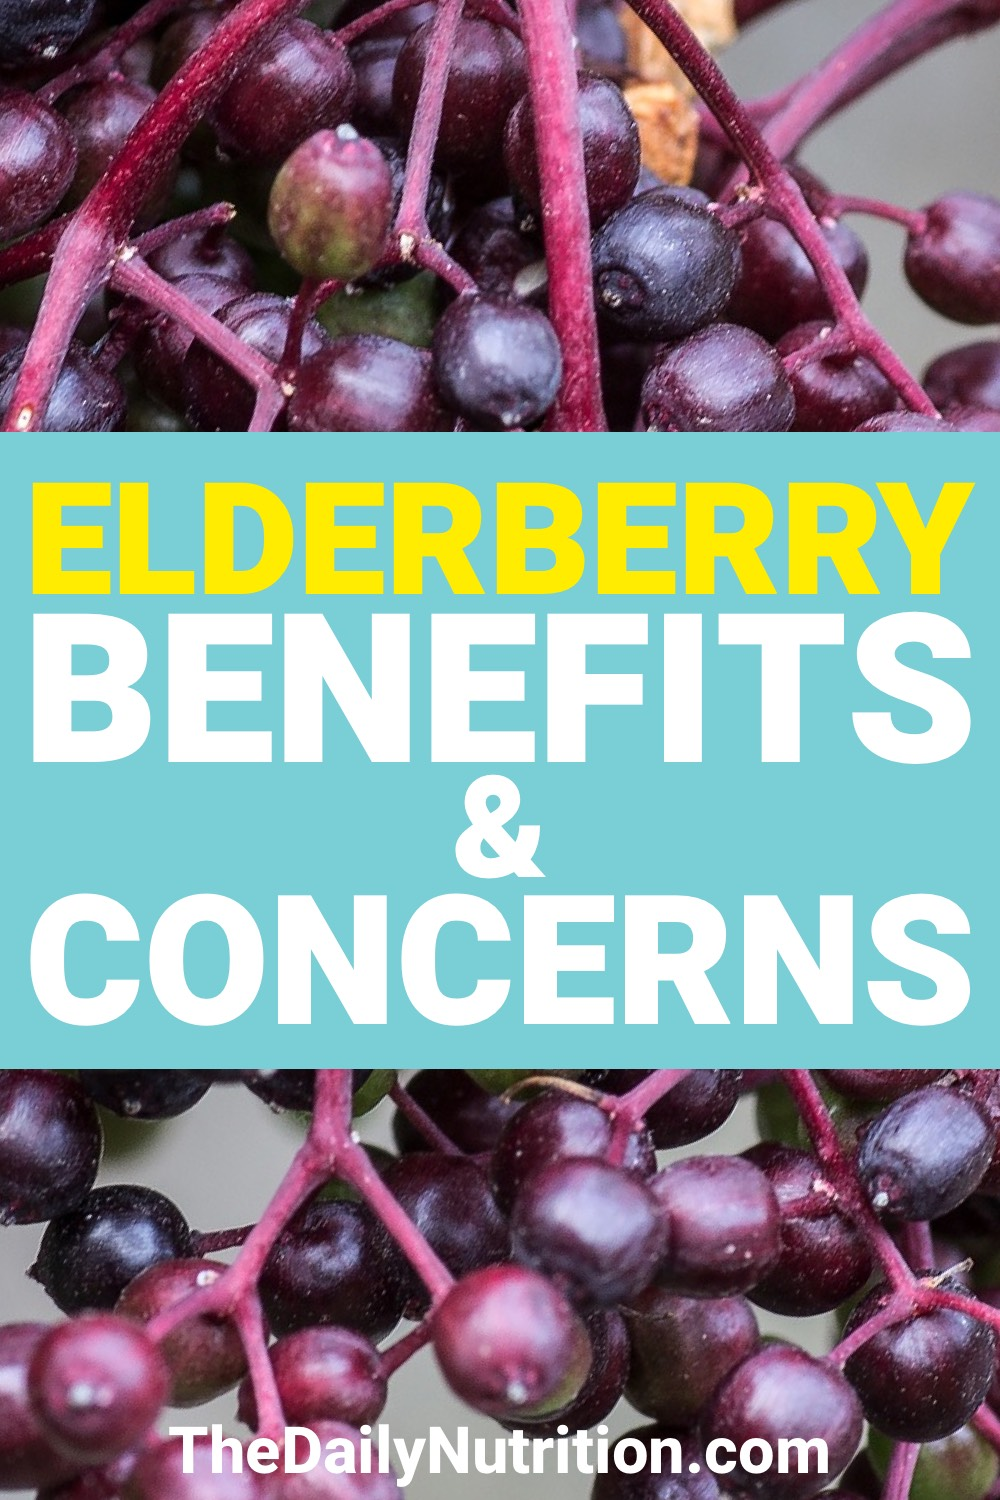 Elderberries are a fruit that's beneficial to your health. Here are 5 elderberry benefits that you should be aware of.